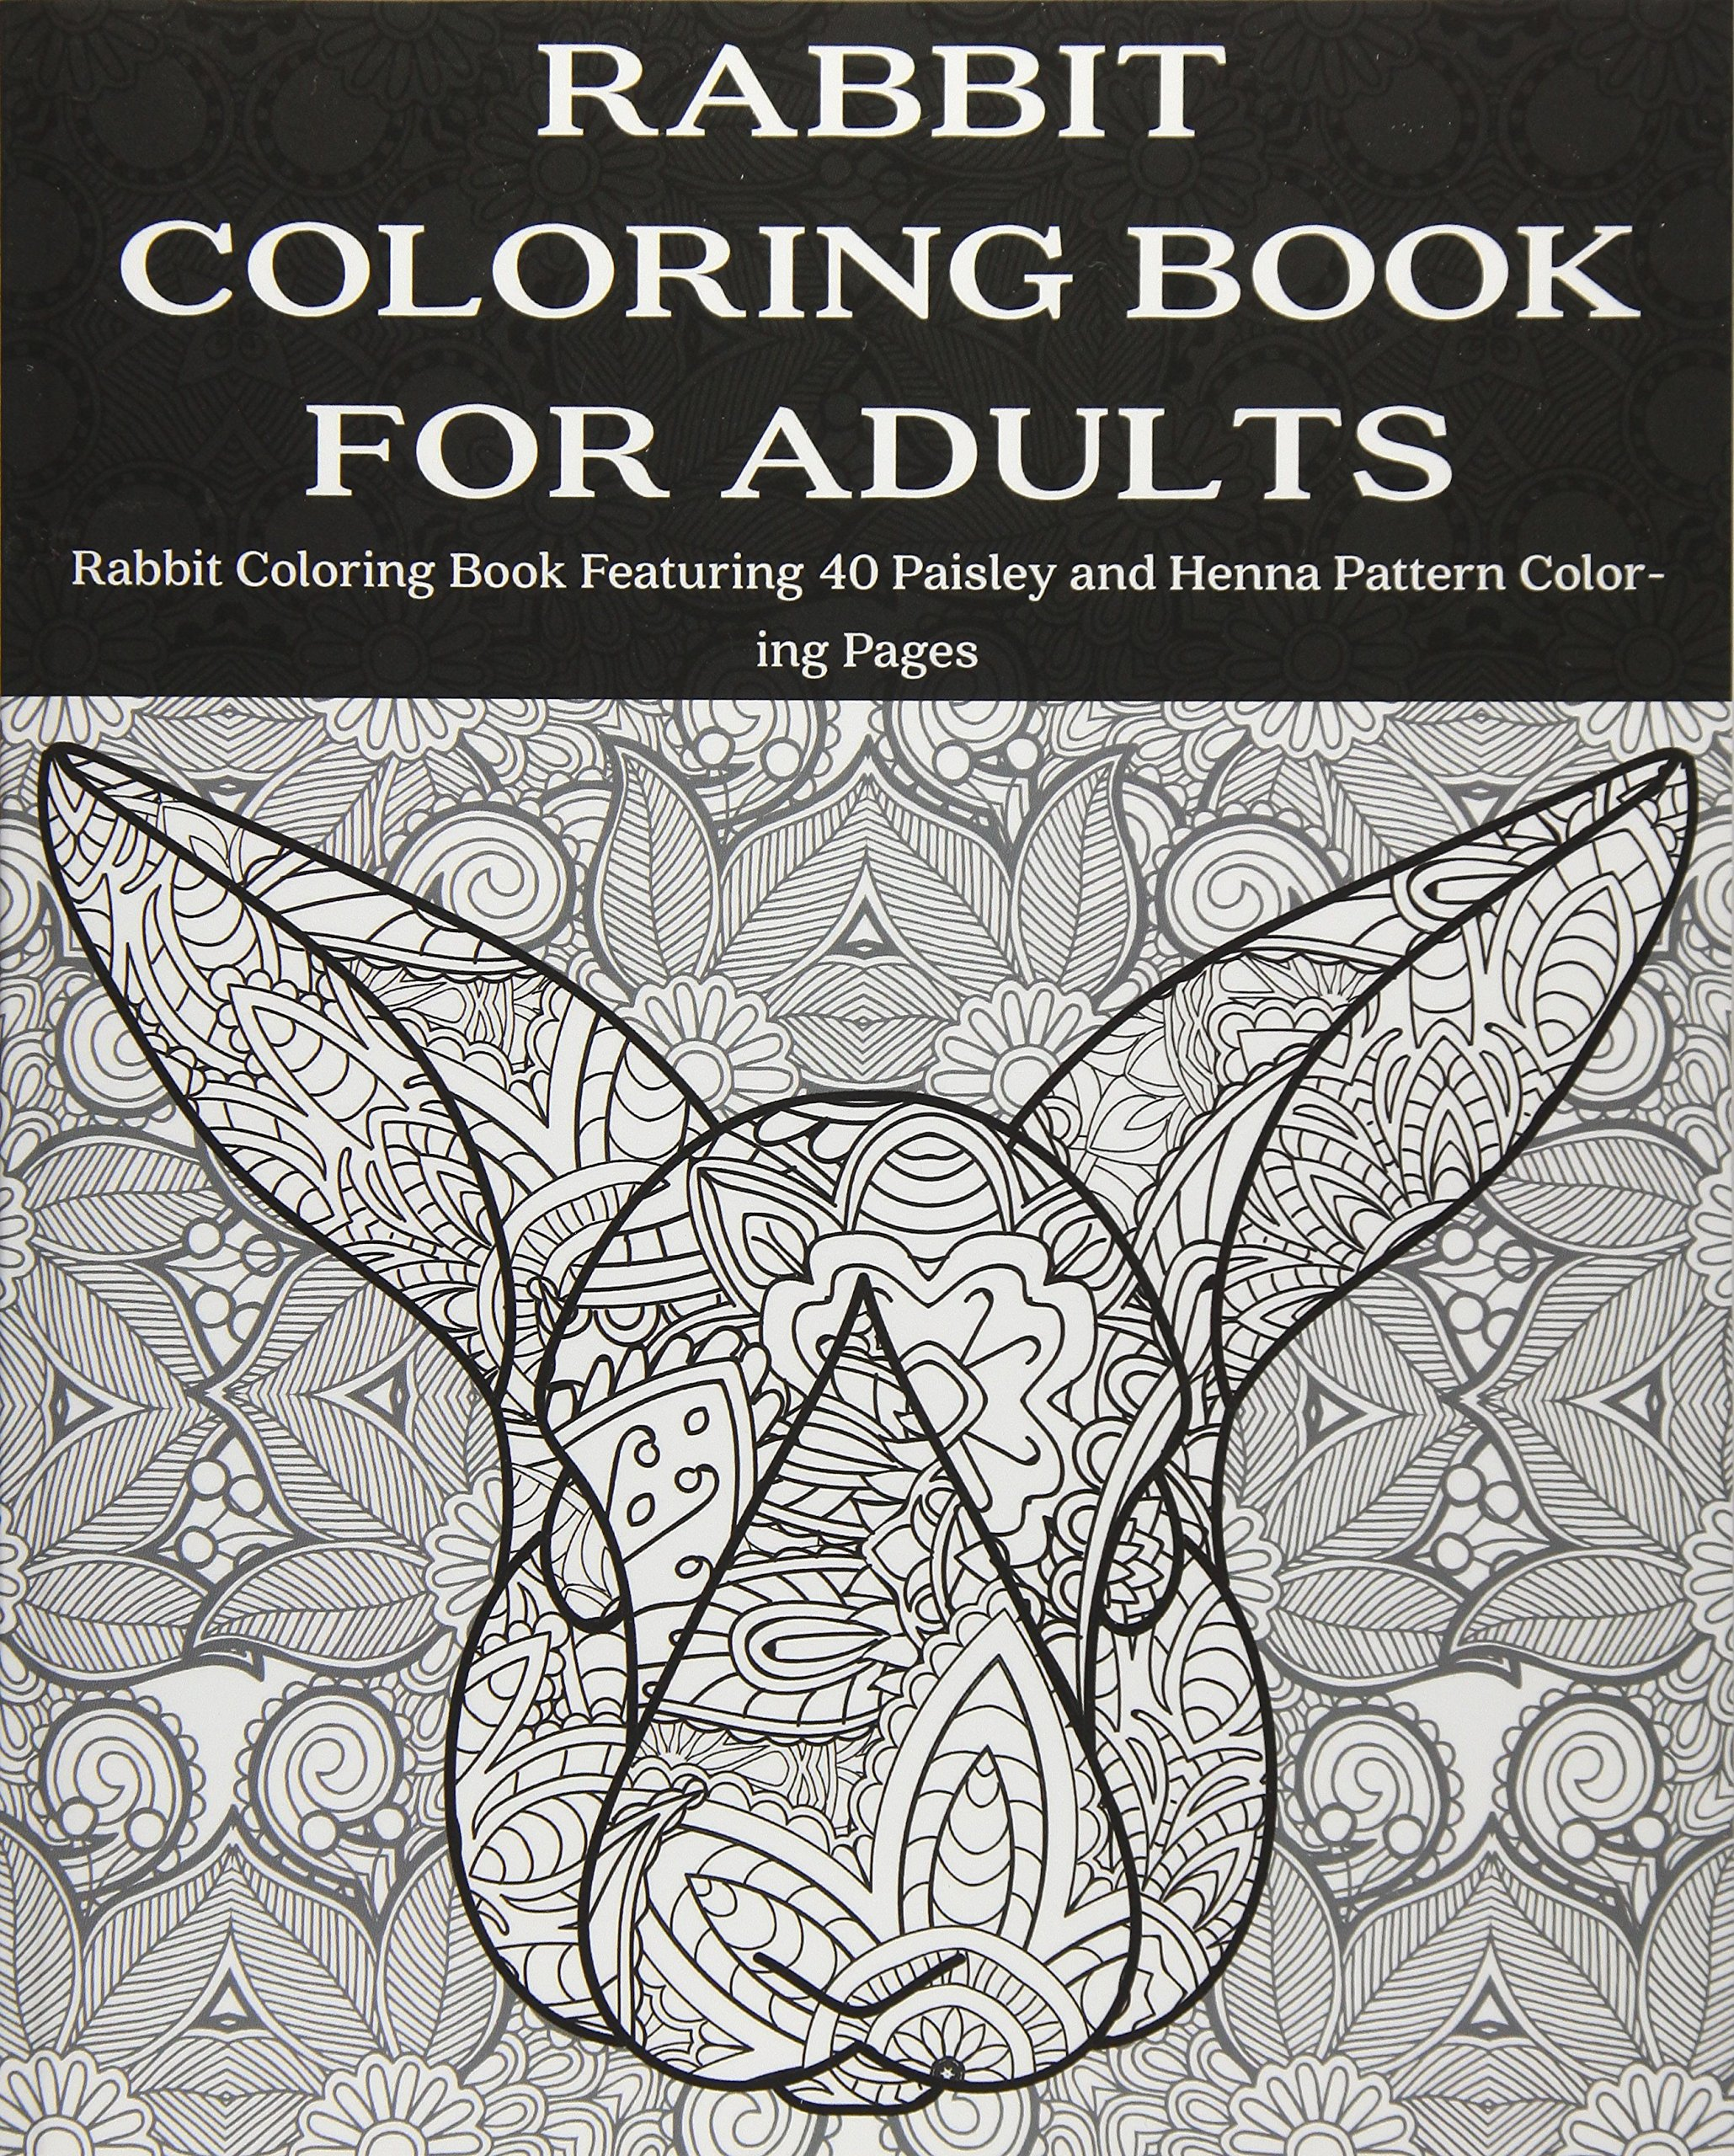 Amazon.com: Rabbit Coloring Book for Adults: Rabbit Coloring Book ...